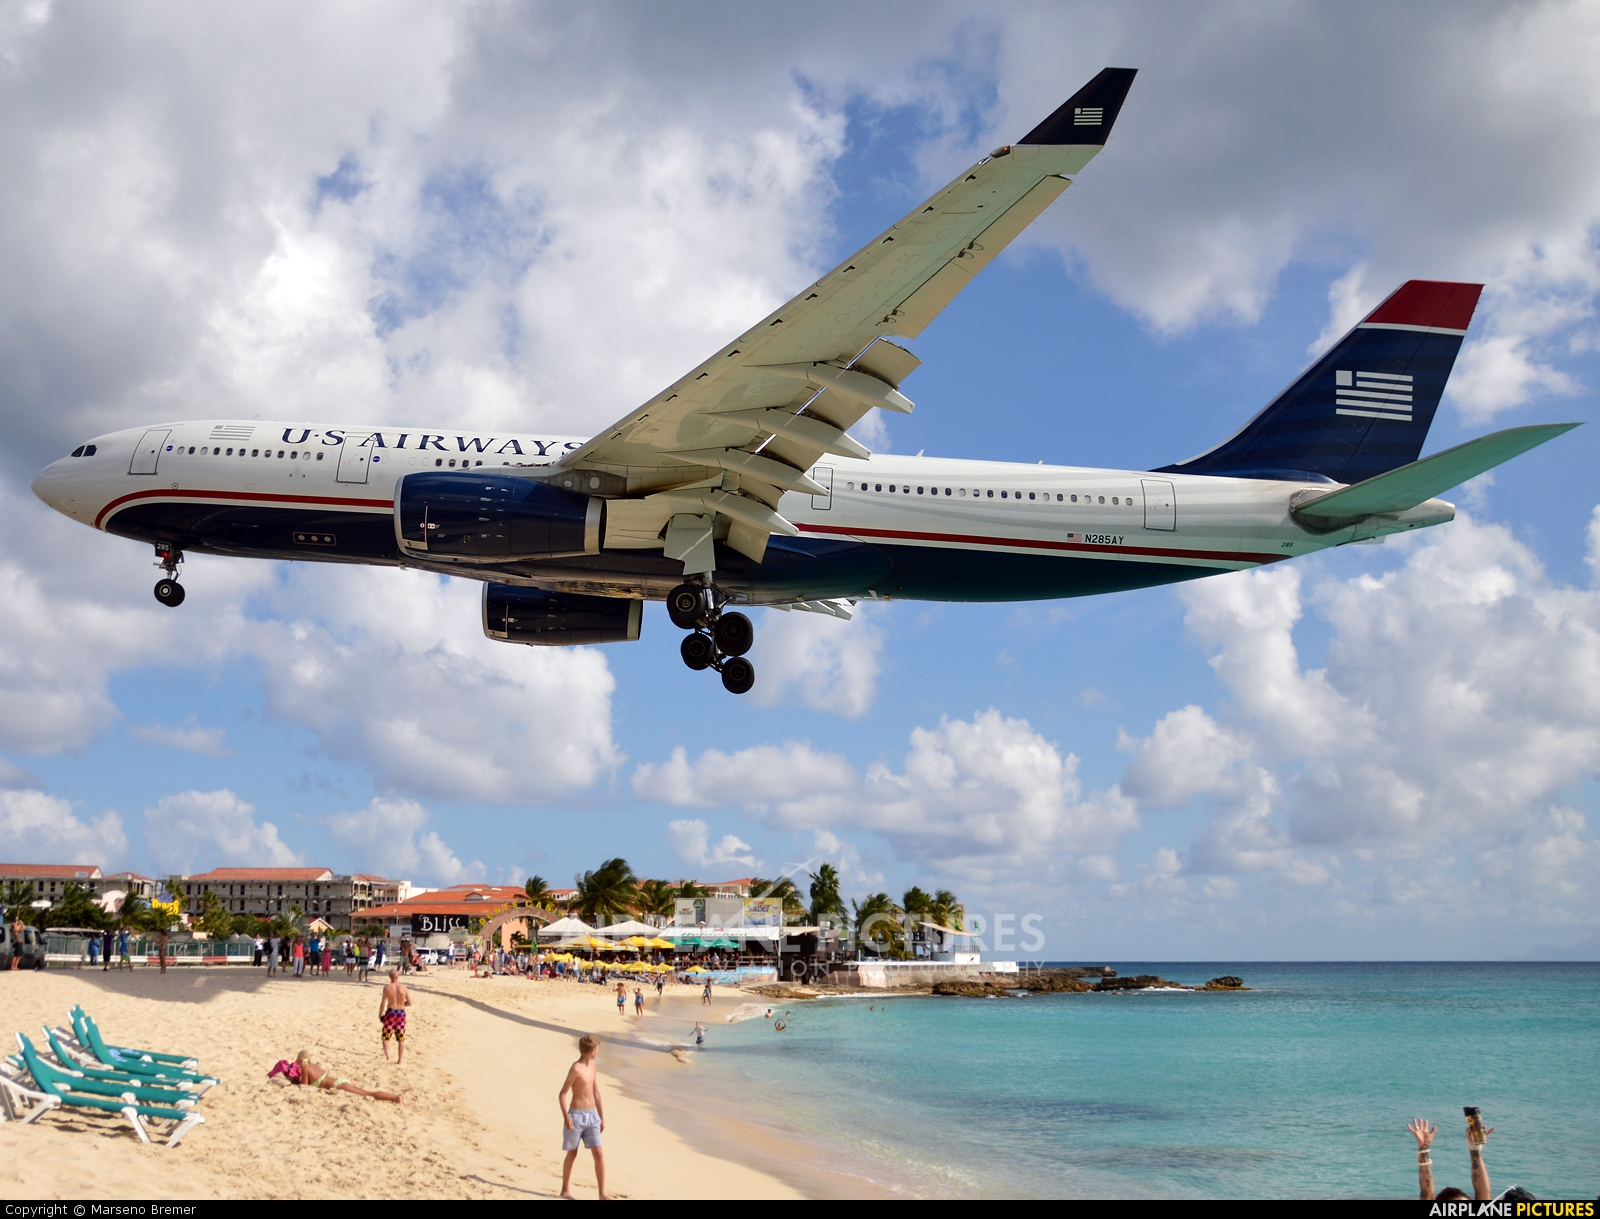 US Airways N285AY aircraft at Sint Maarten - Princess Juliana Intl